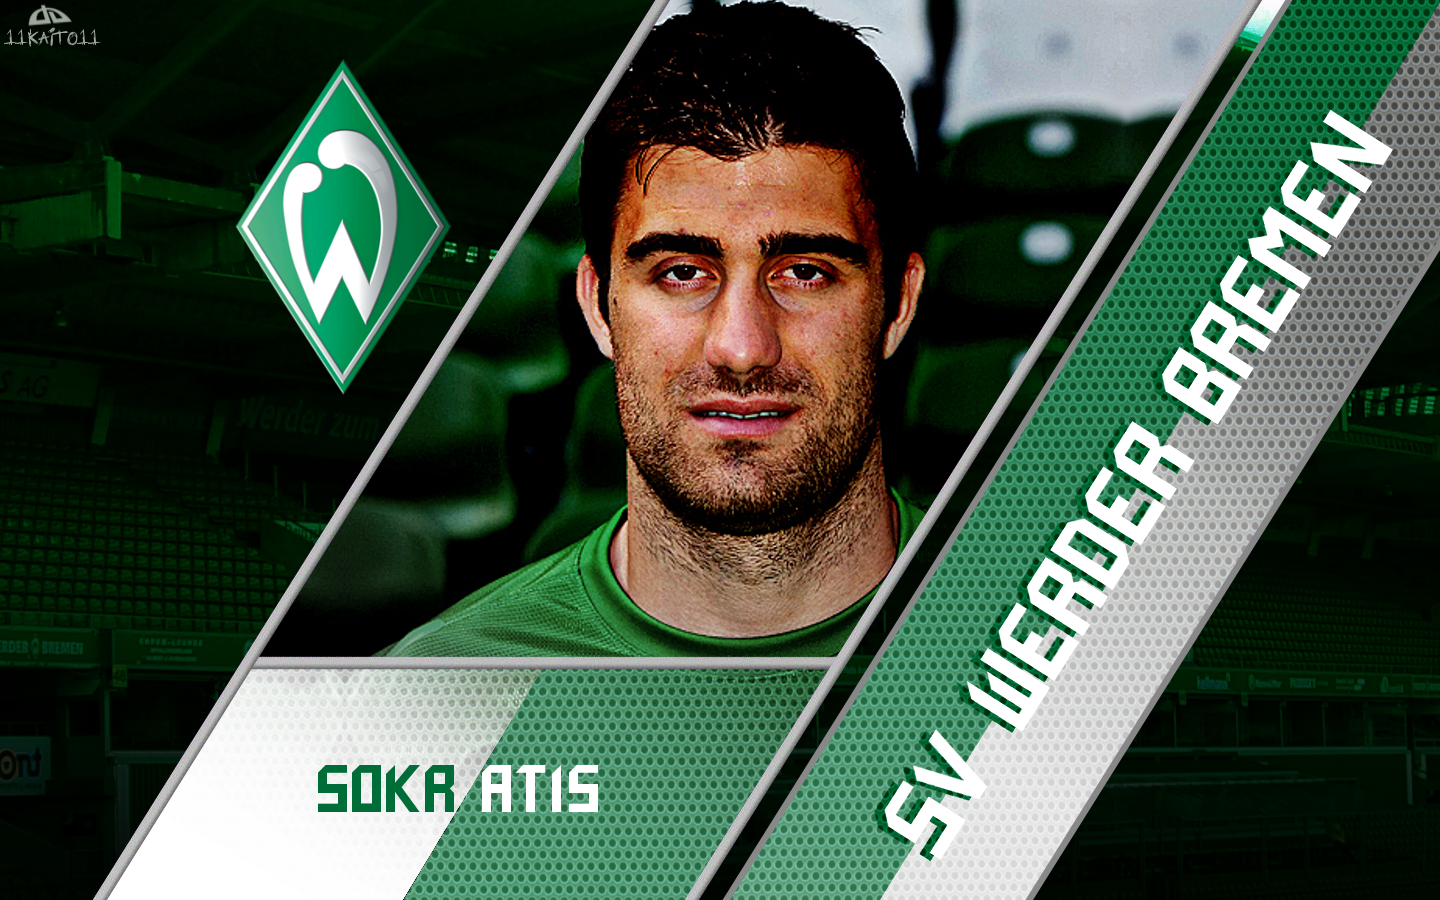 SV Werder Bremen (Wallpaper 23) By 11kaito11 On DeviantArt